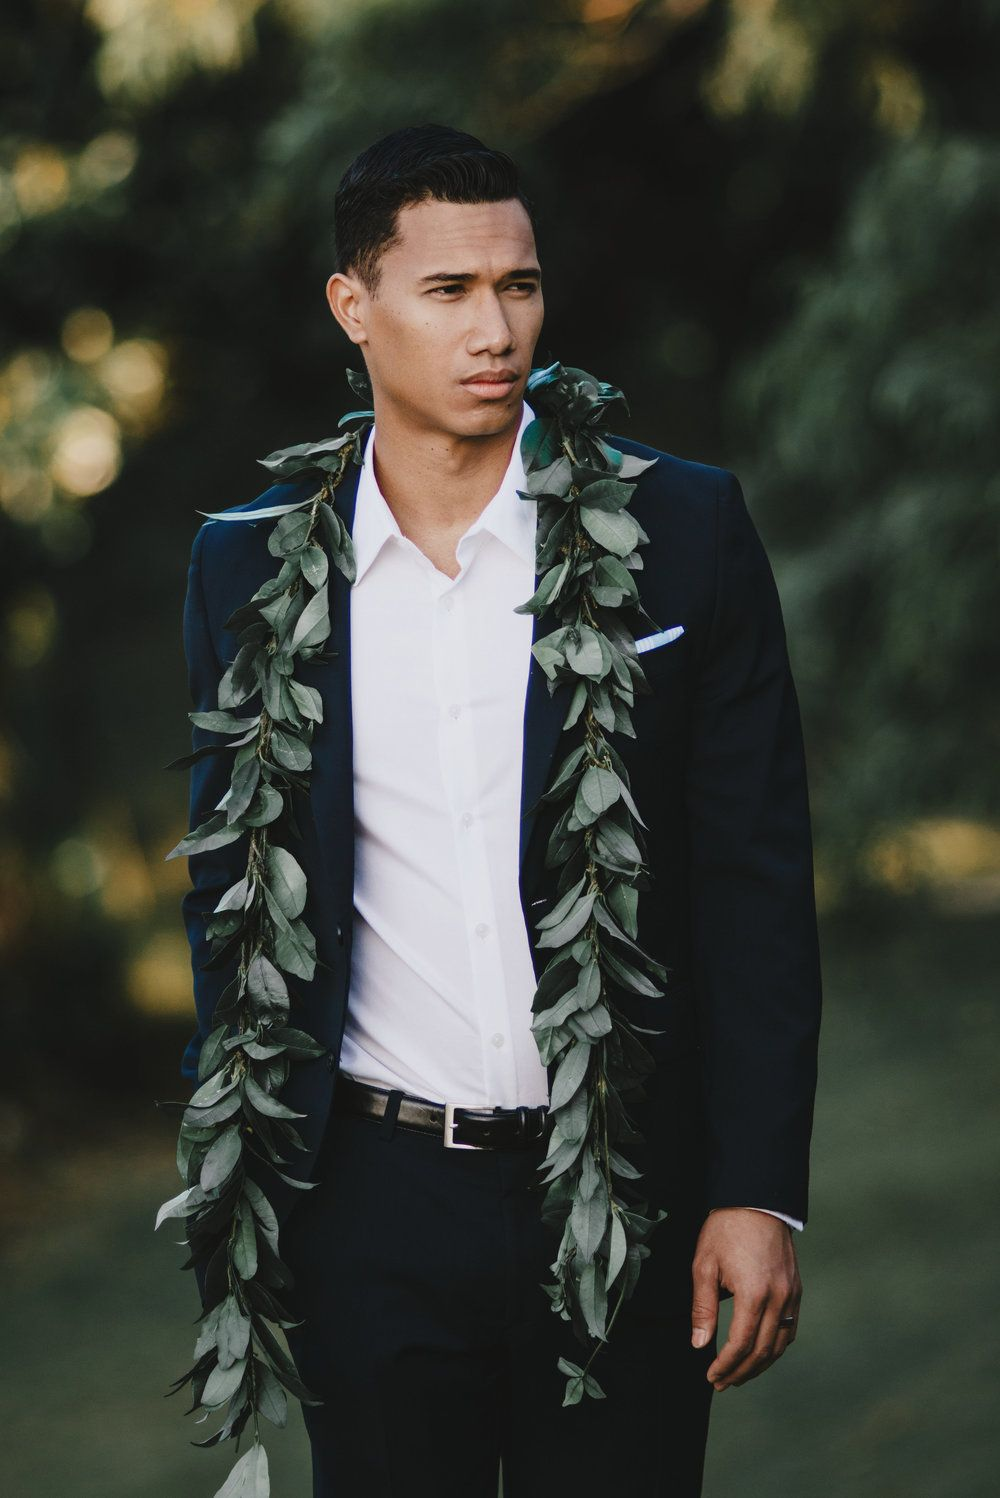 Wedding Trend For Him Lose The Tie Wear A Maile Lei